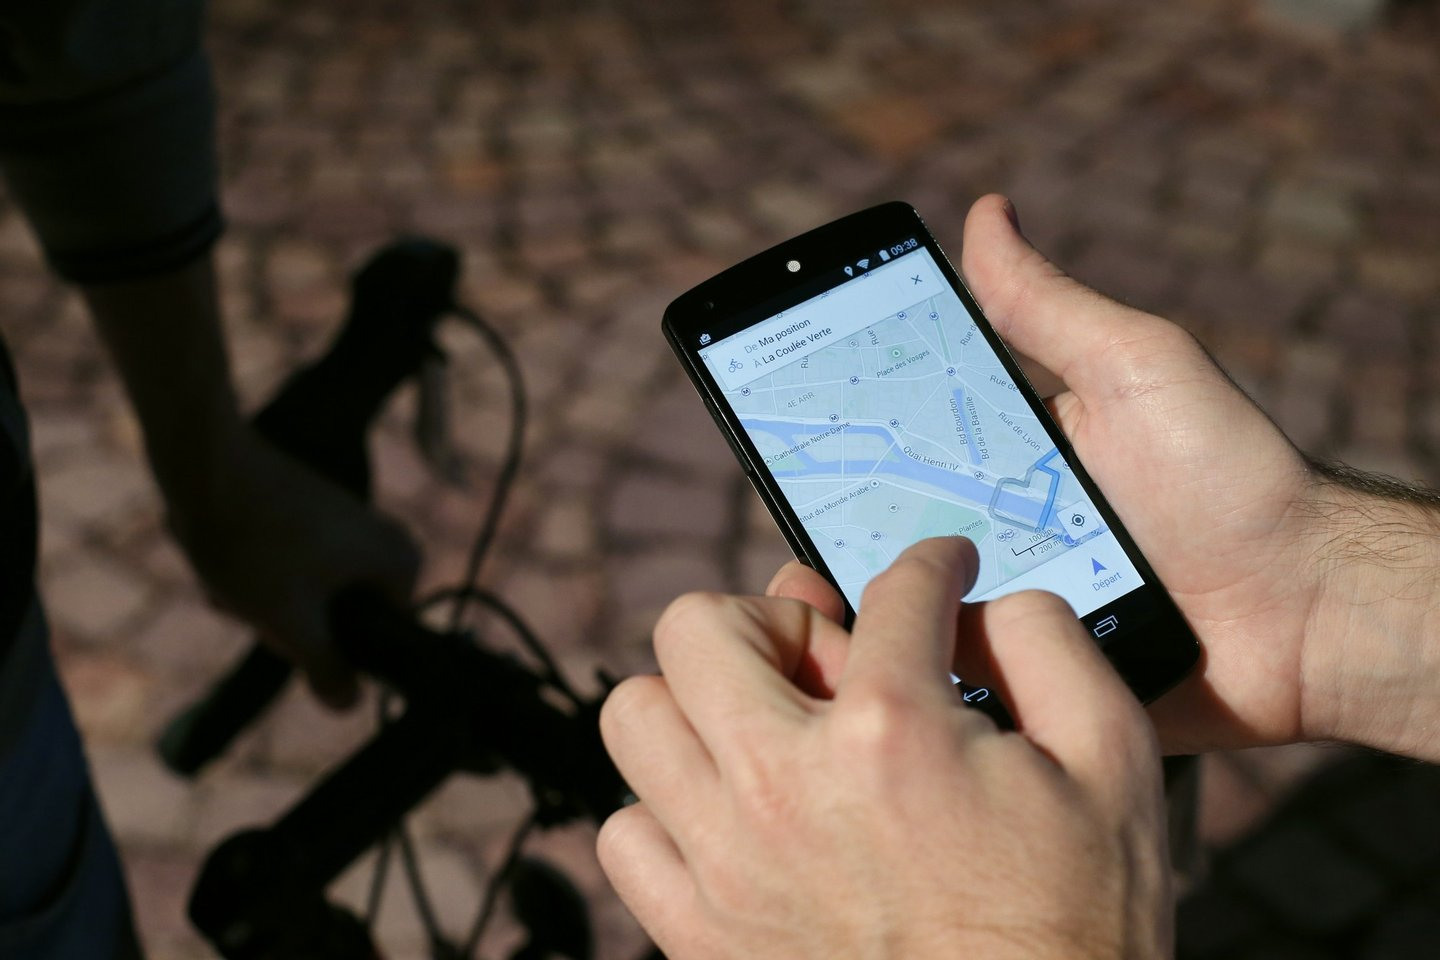 A man uses a GPS app on a smartphone during a Google promotion event at the City of Fashion and Design (Cite de la mode et du design) in Paris on November 4, 2014. AFP PHOTO / THOMAS SAMSON (Photo credit should read THOMAS SAMSON/AFP/Getty Images)